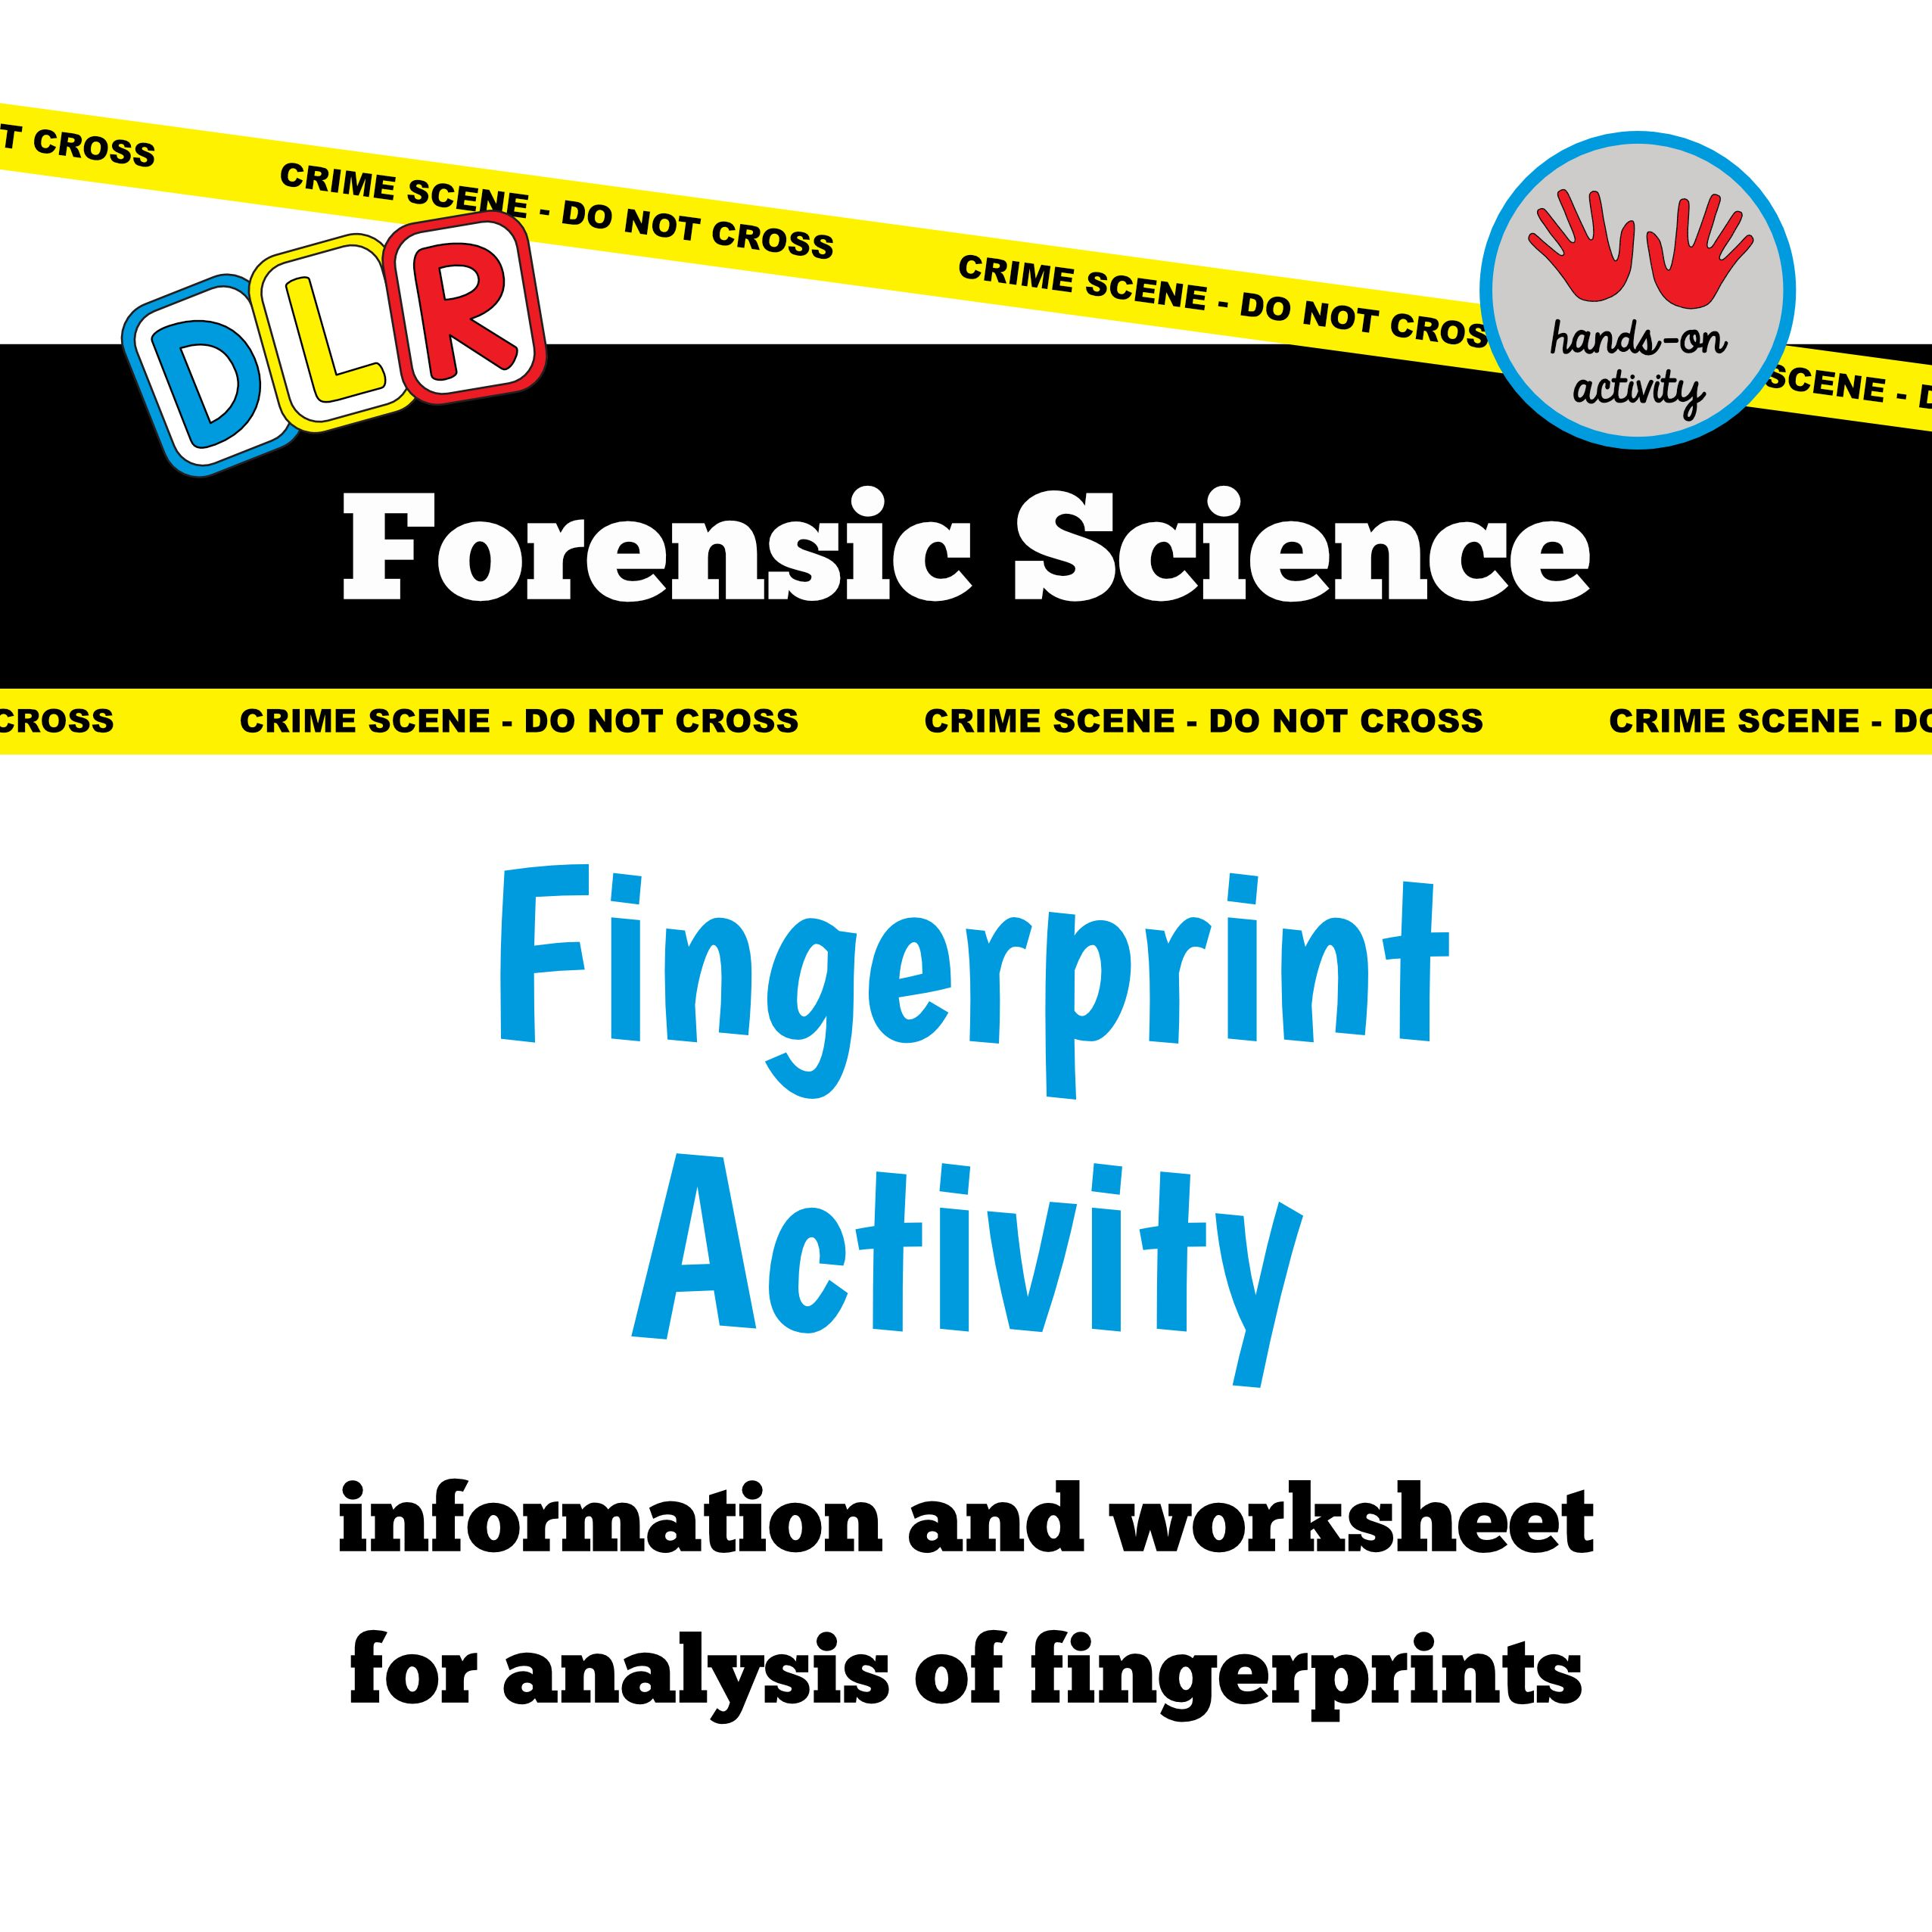 worksheet How Observant Are You Worksheet forensic science free worksheet fingerprint fingerprint